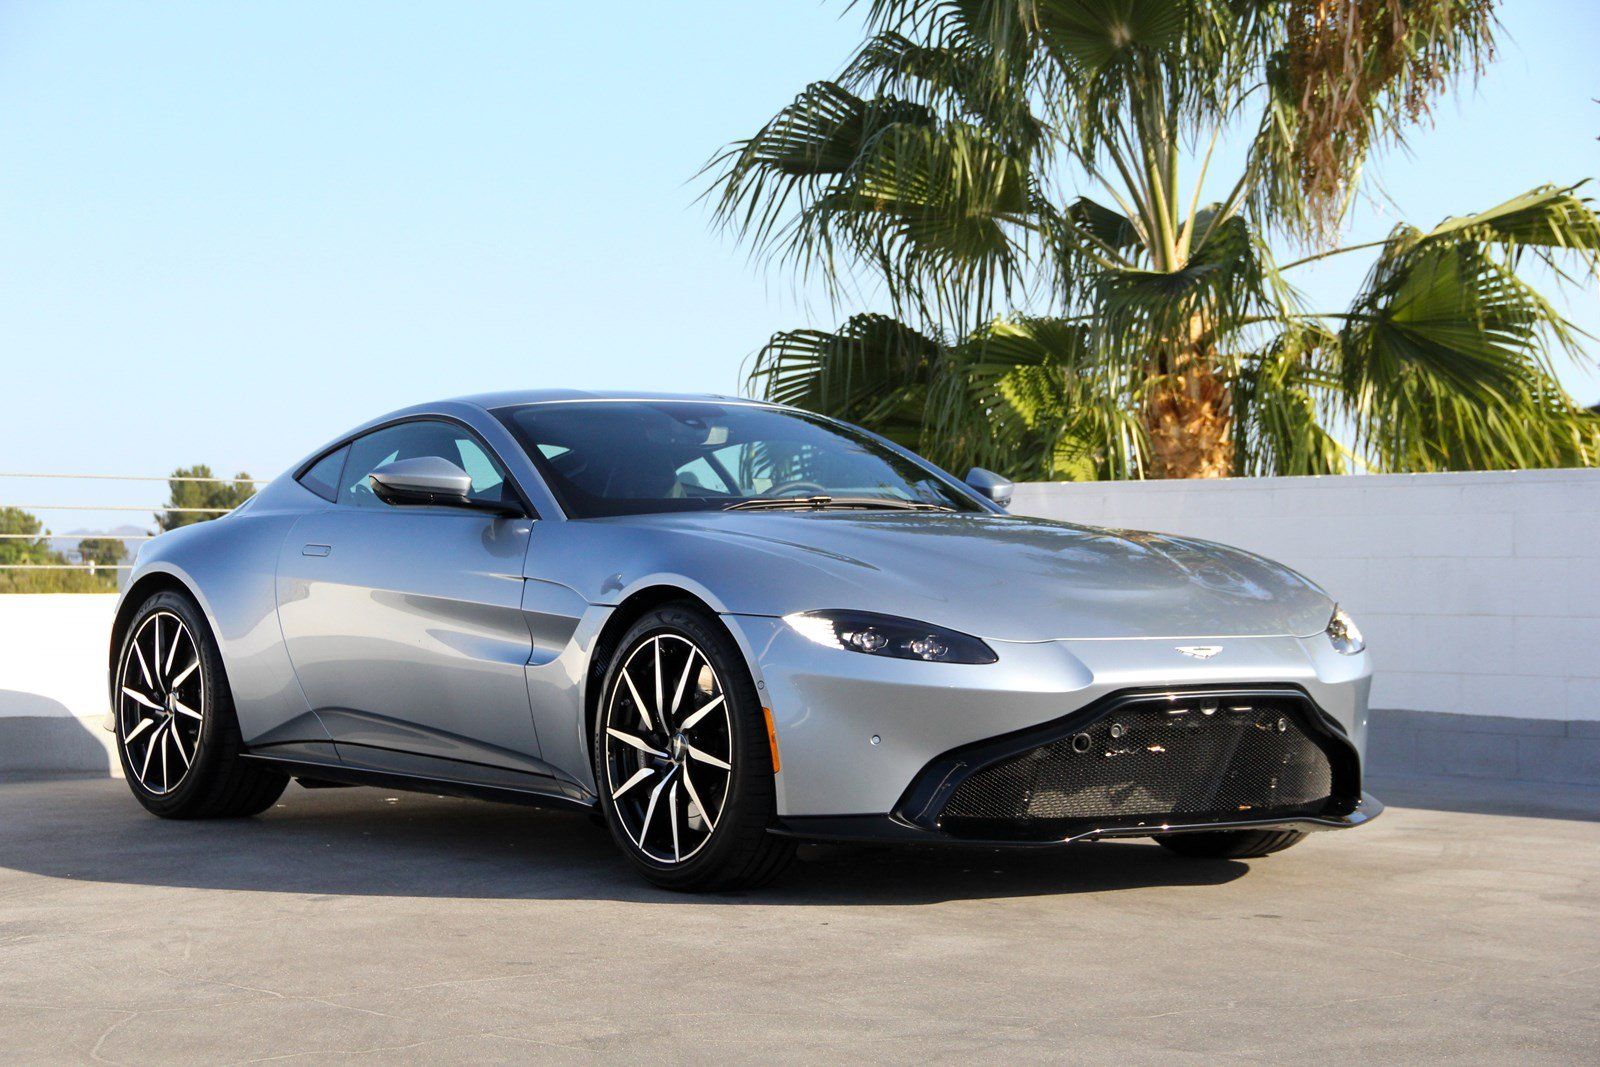 Galpin Aston Martin Los Angeles Aston Martin Special Offers Van - Build your own aston martin